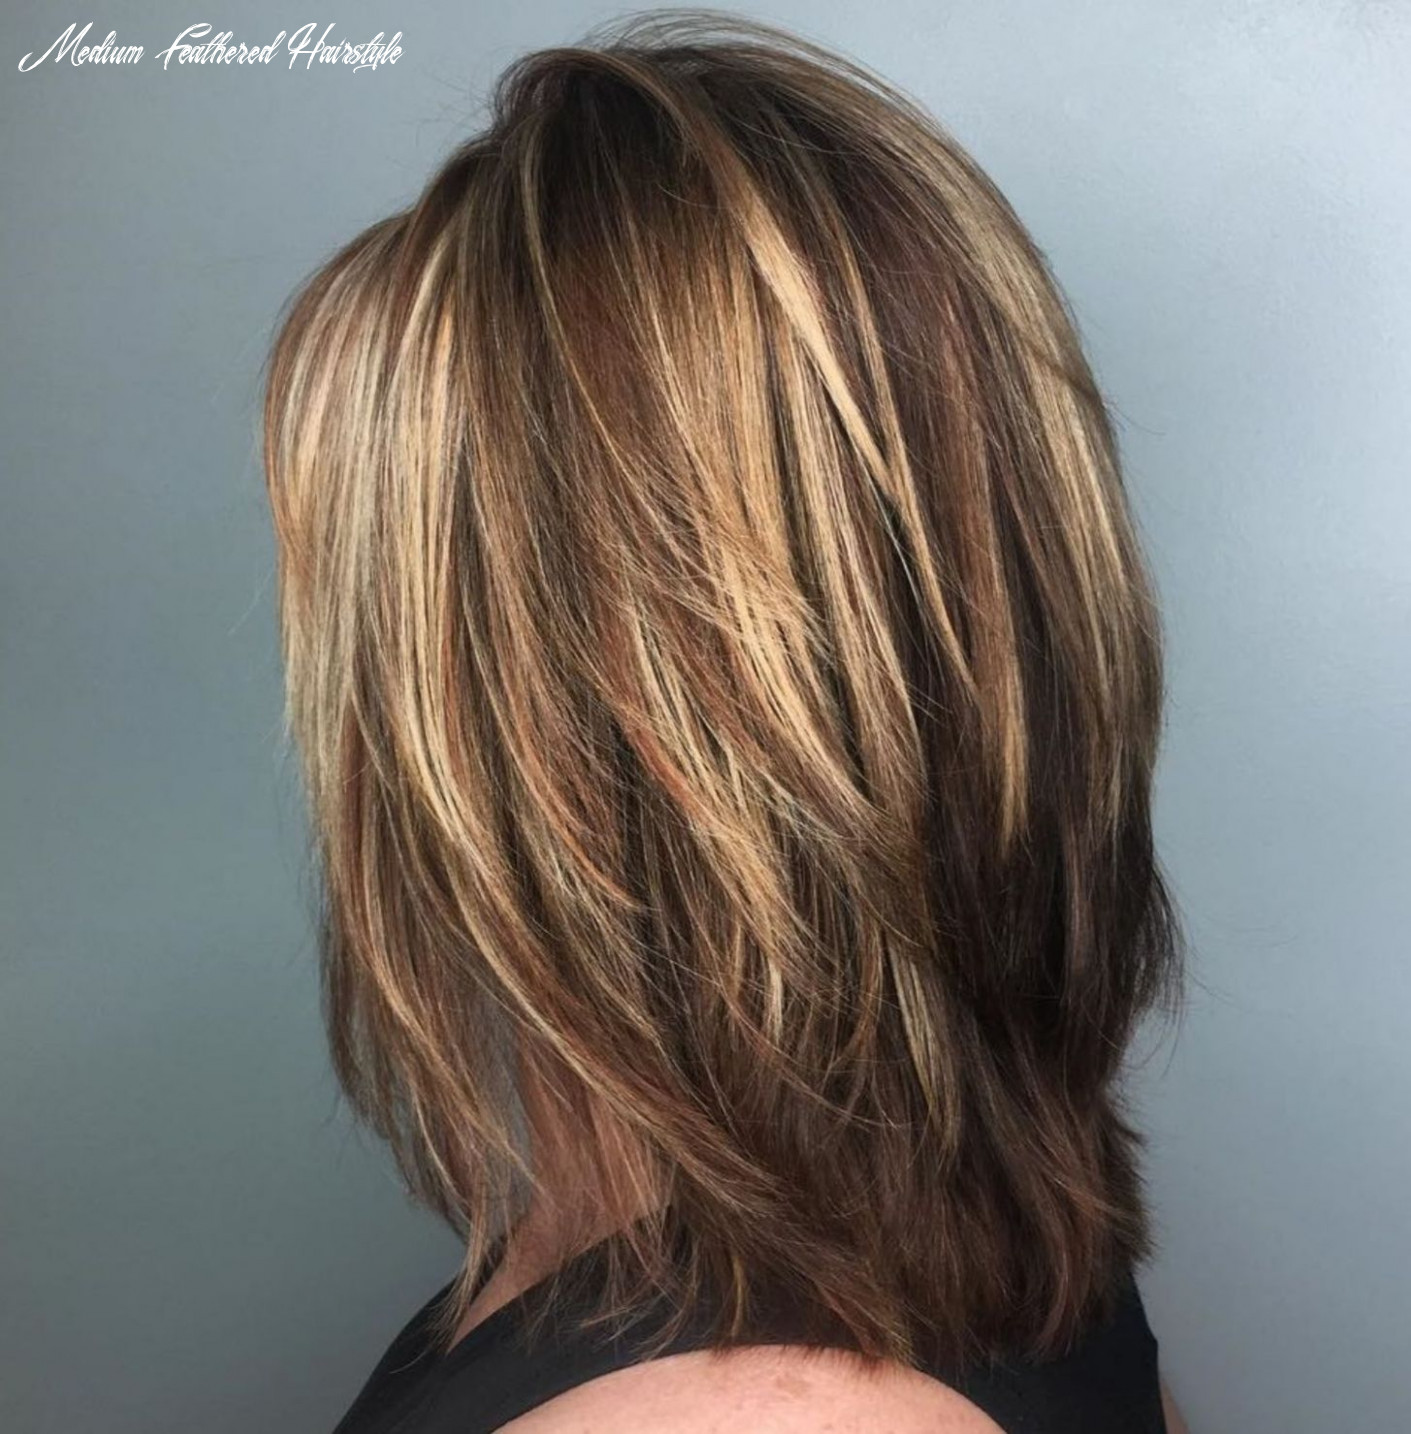 Pin on hair styles medium feathered hairstyle